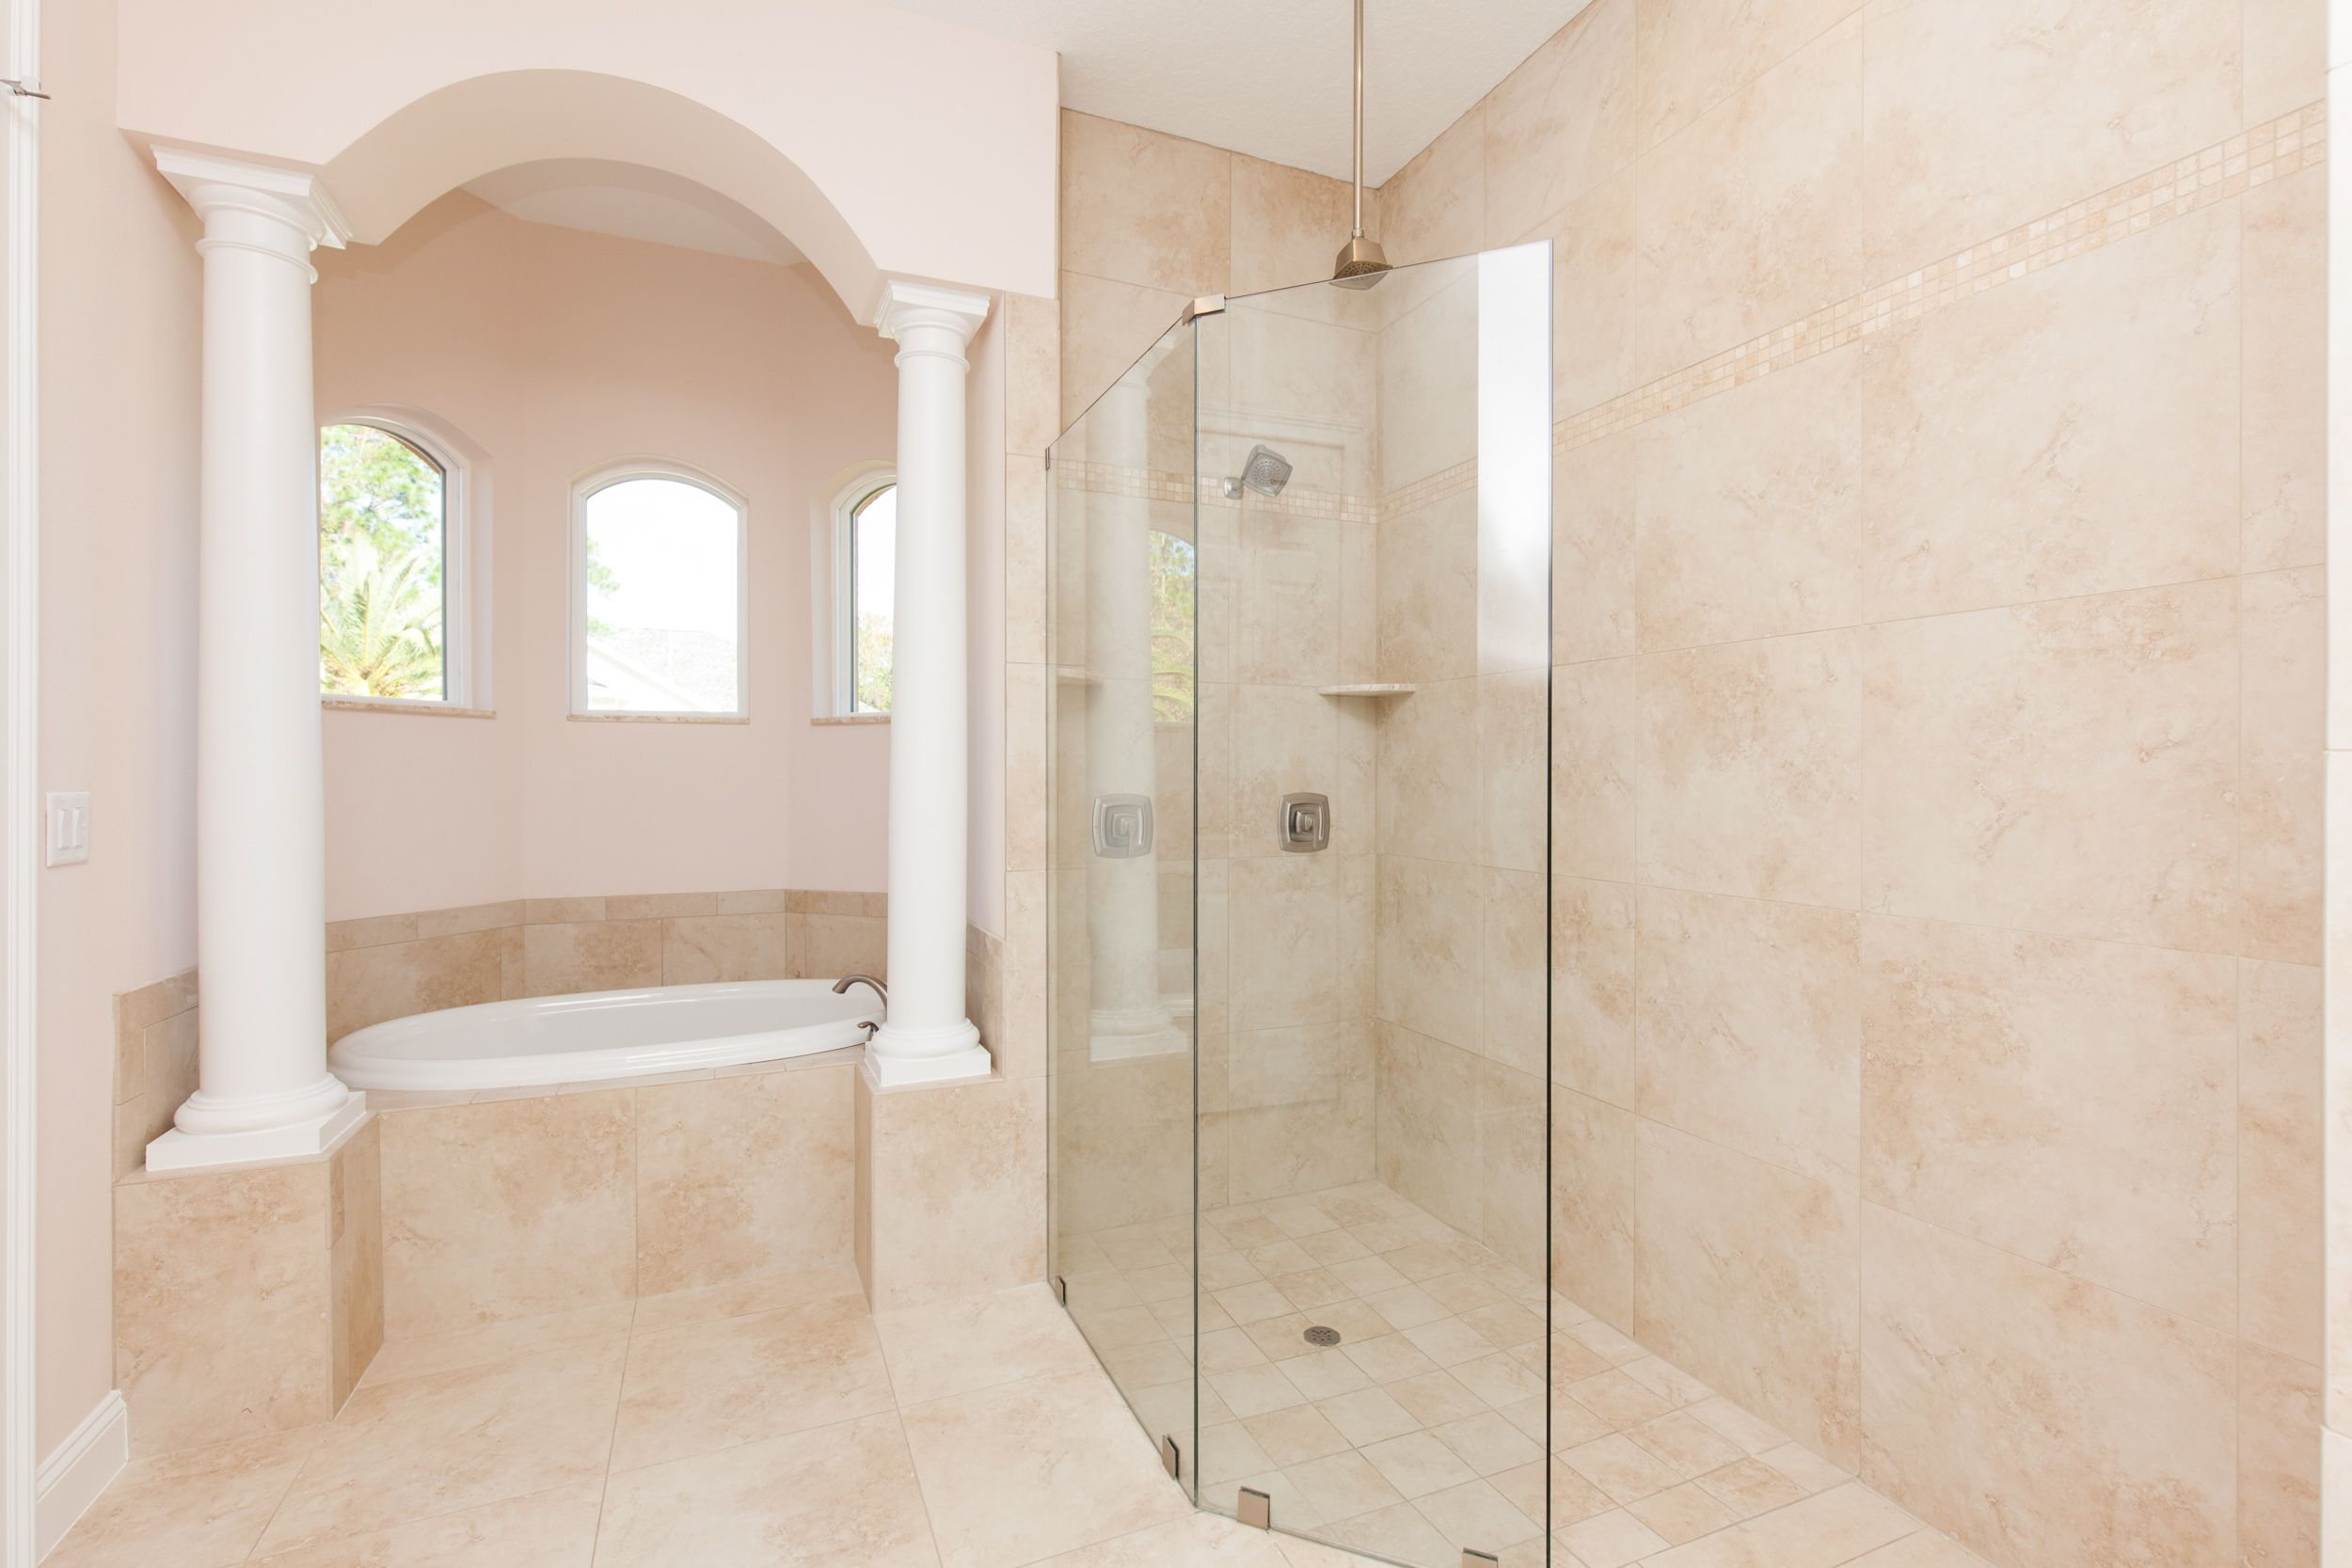 Bathroom featured in the ALISA. Certified Green home By Florida Green Construction